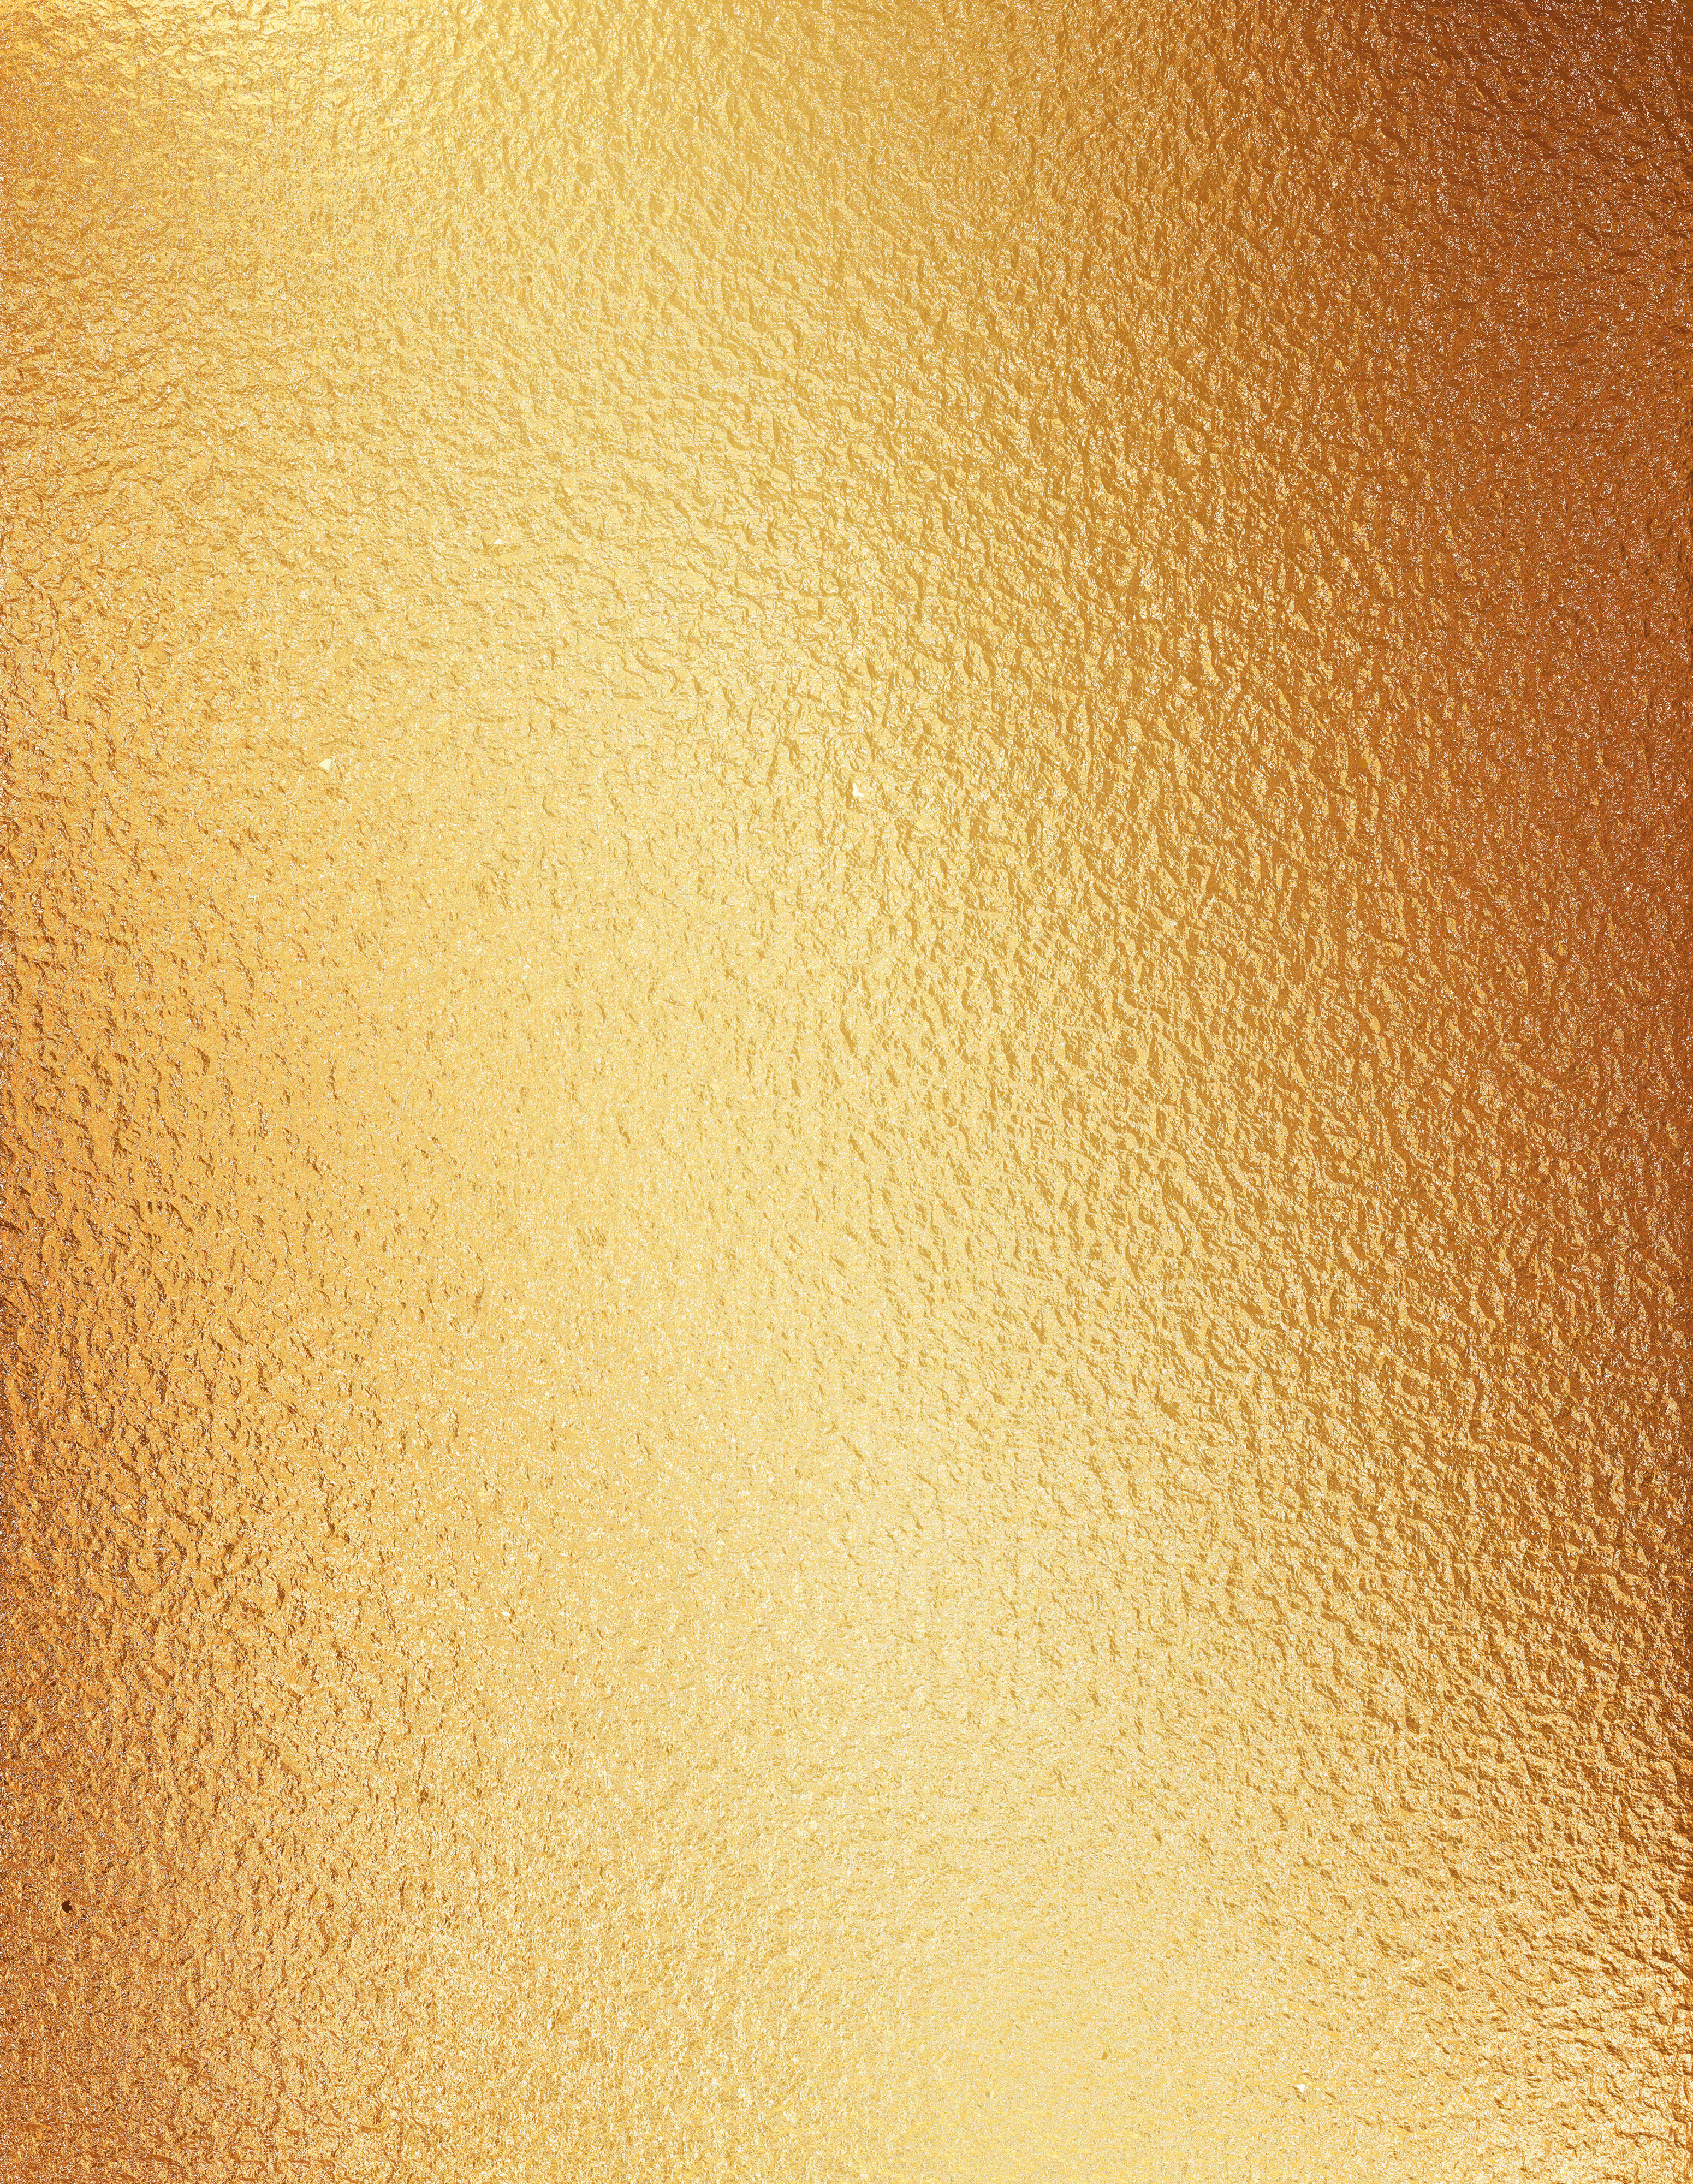 gold background photoshop - photo #26